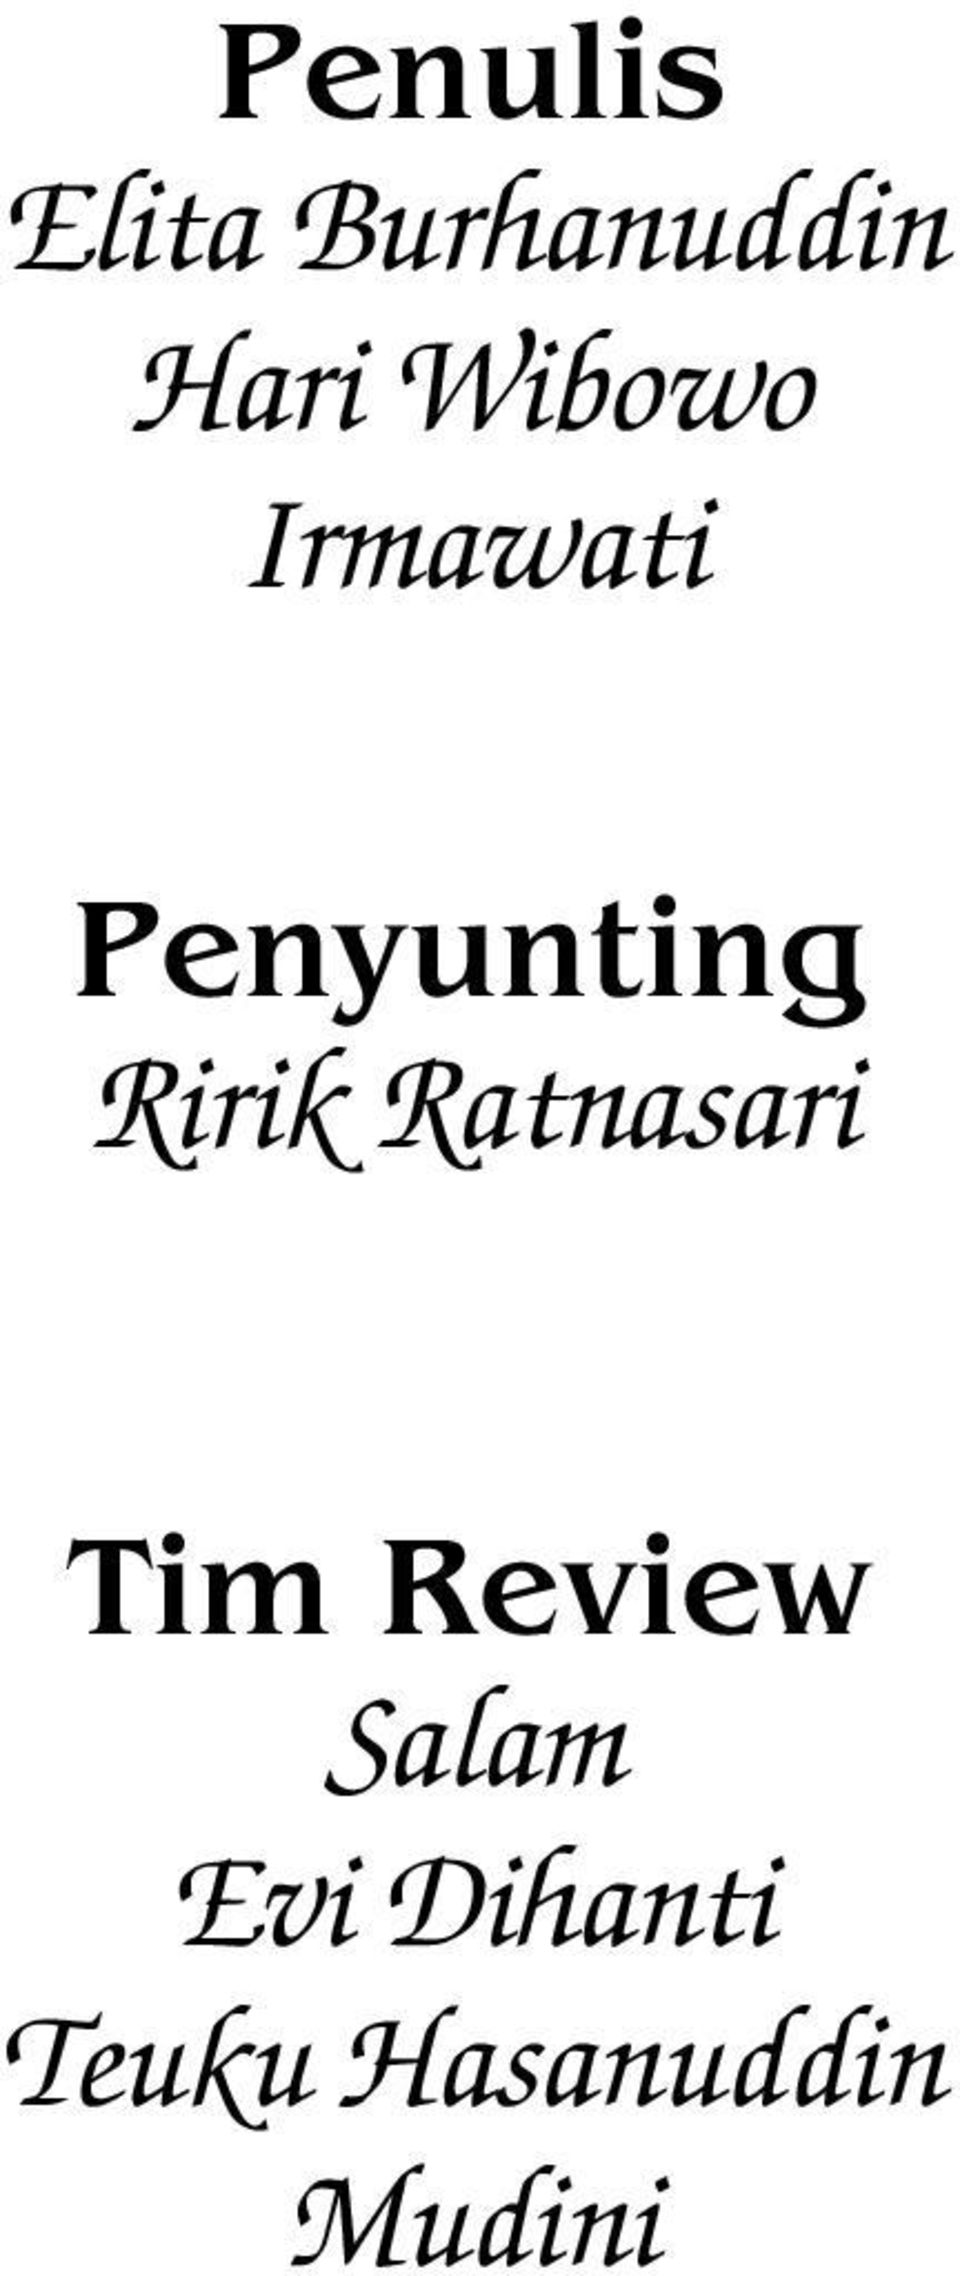 Ririk Ratnasari Tim Review